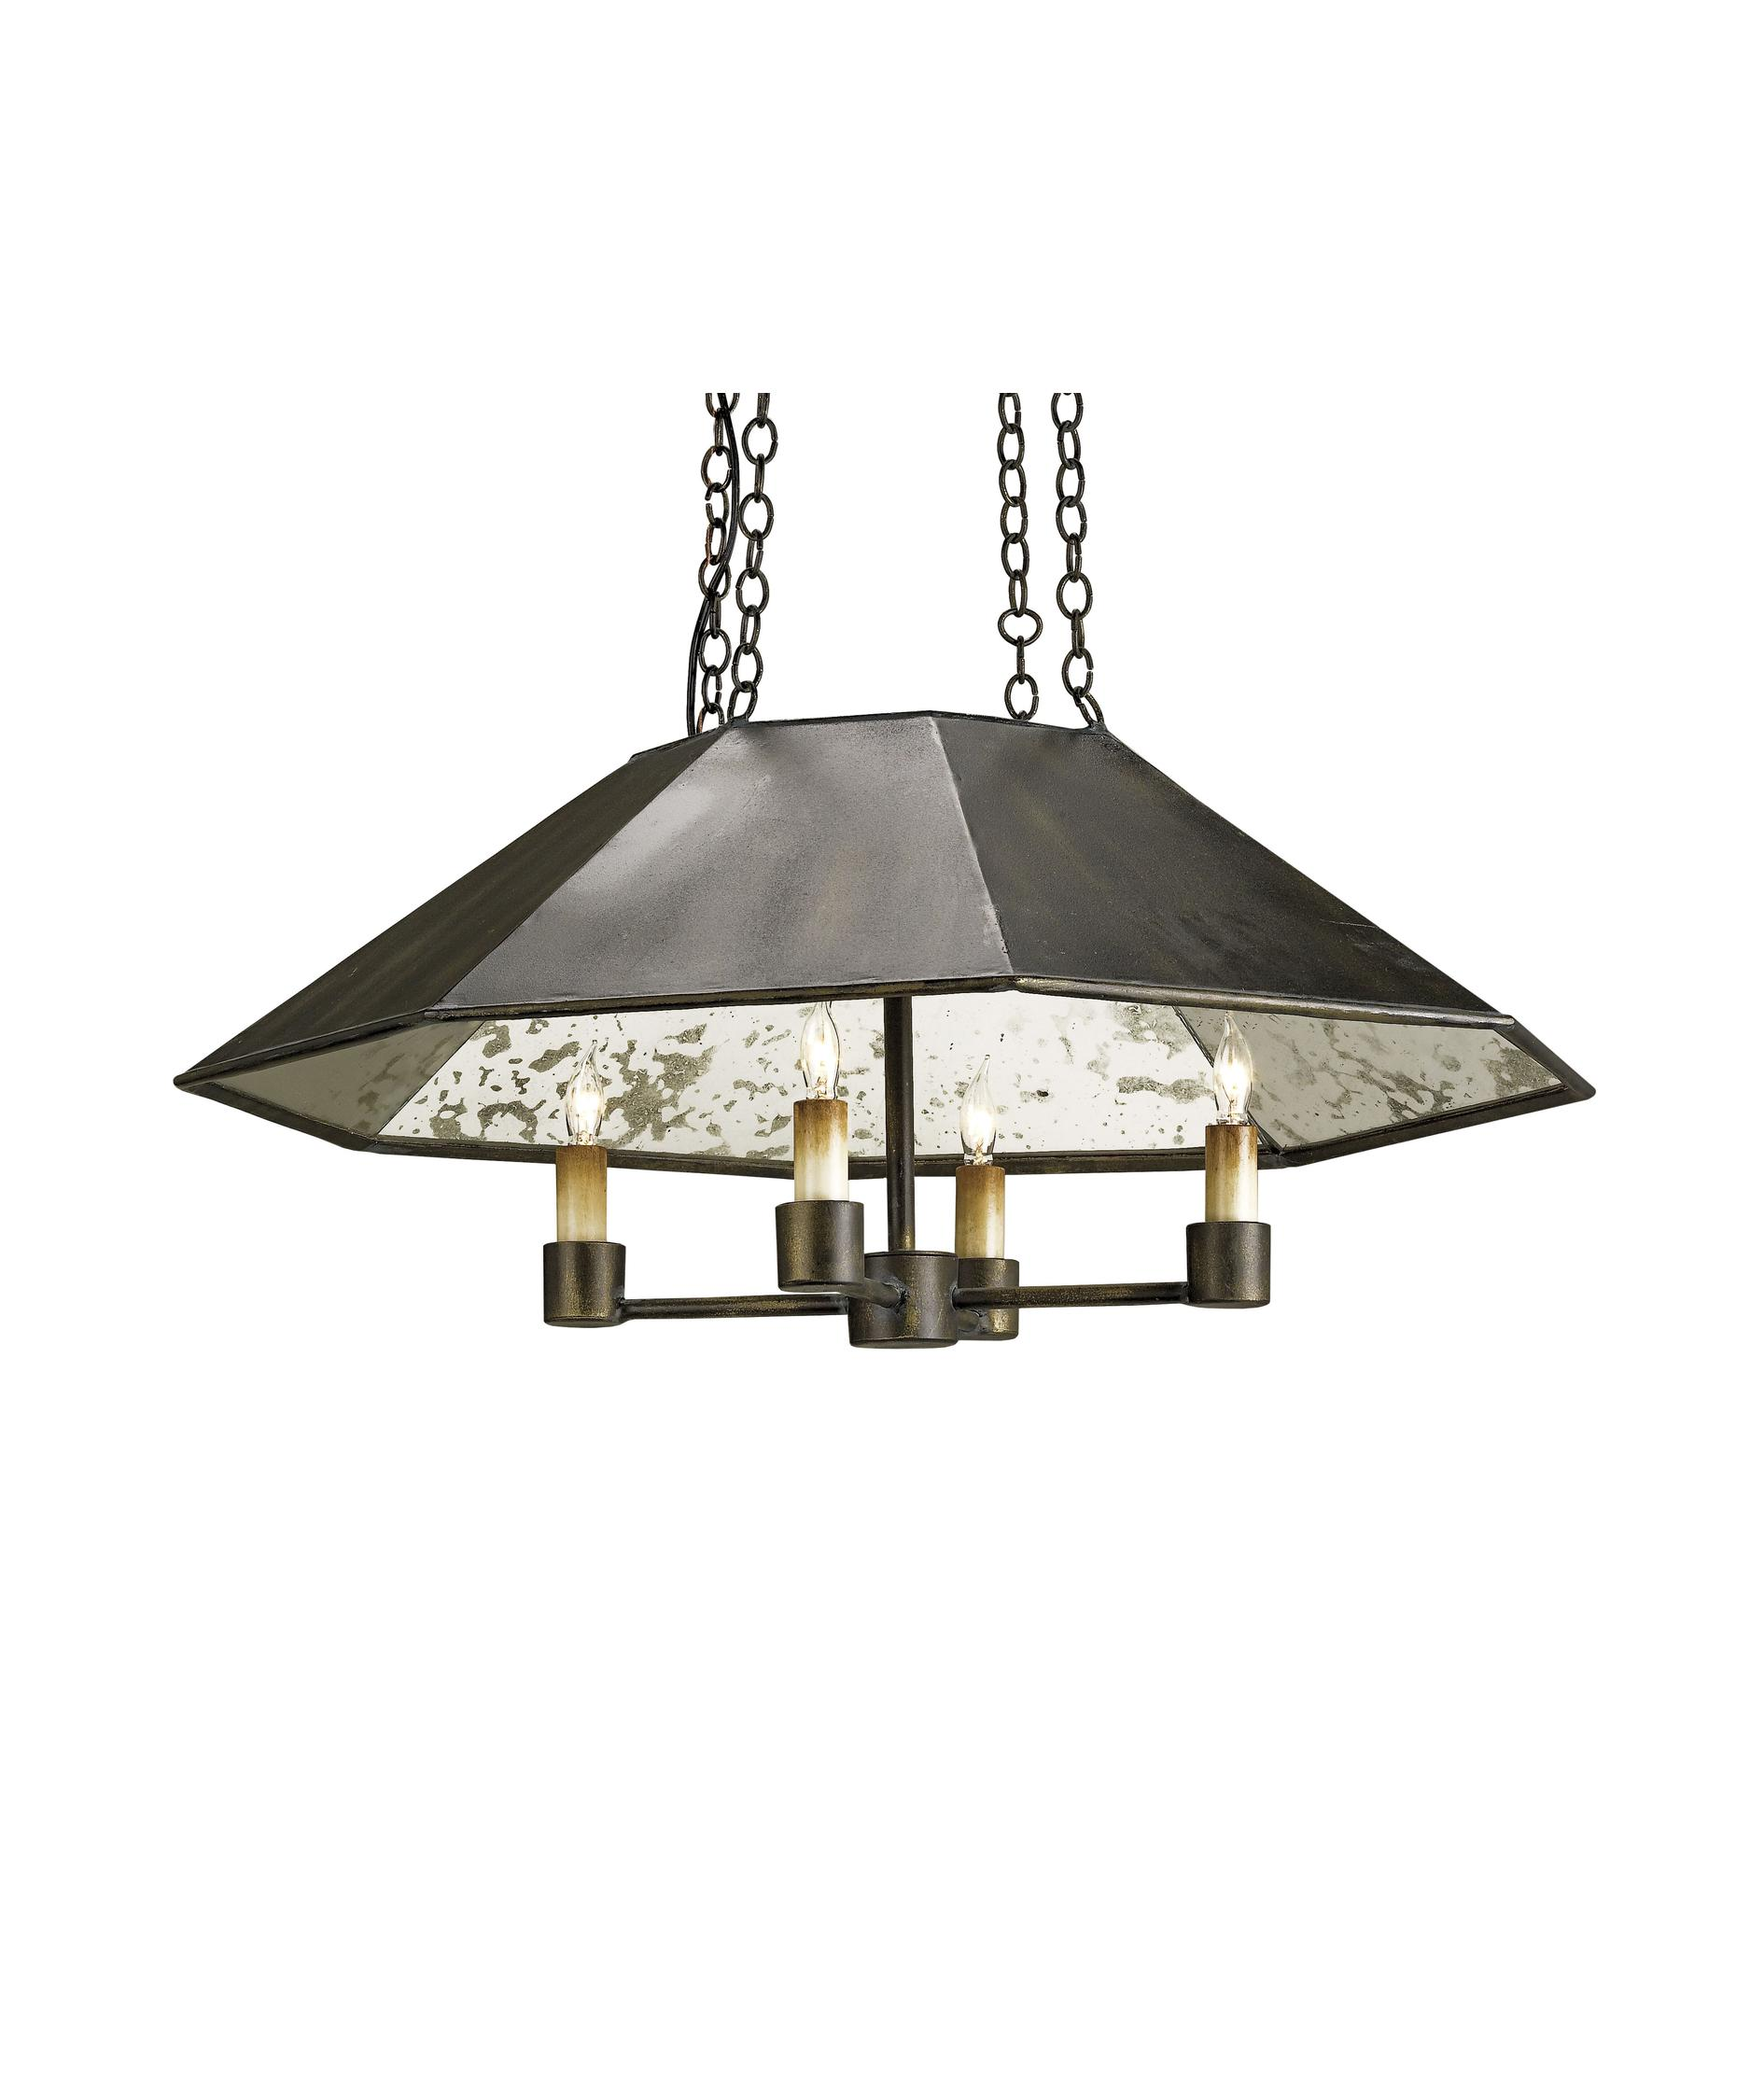 currey and company lighting fixtures. shown in bronze verdigrisantique mirro finish currey and company lighting fixtures